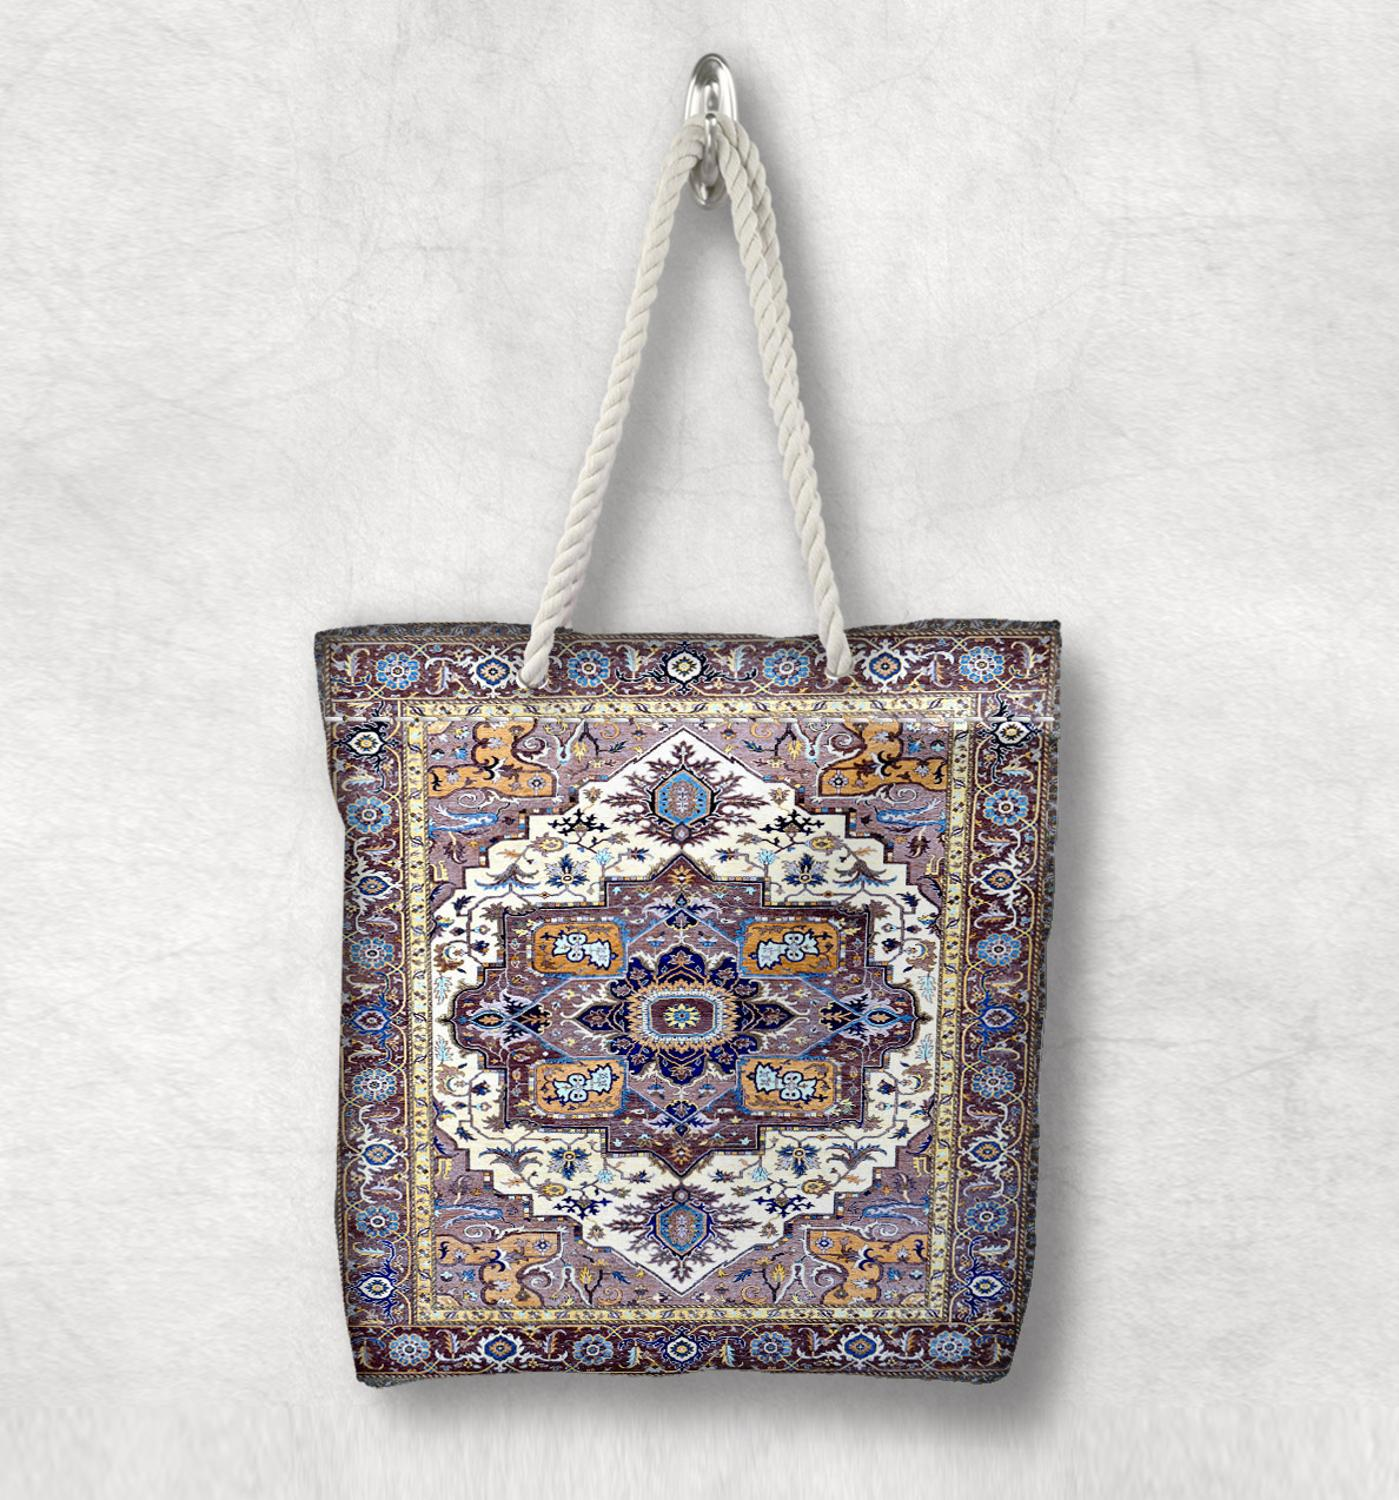 Else Blue Brown Ottoman Anatolia Antique Kilim Design White Rope Handle Canvas Bag Cotton Canvas Zippered Tote Bag Shoulder Bag